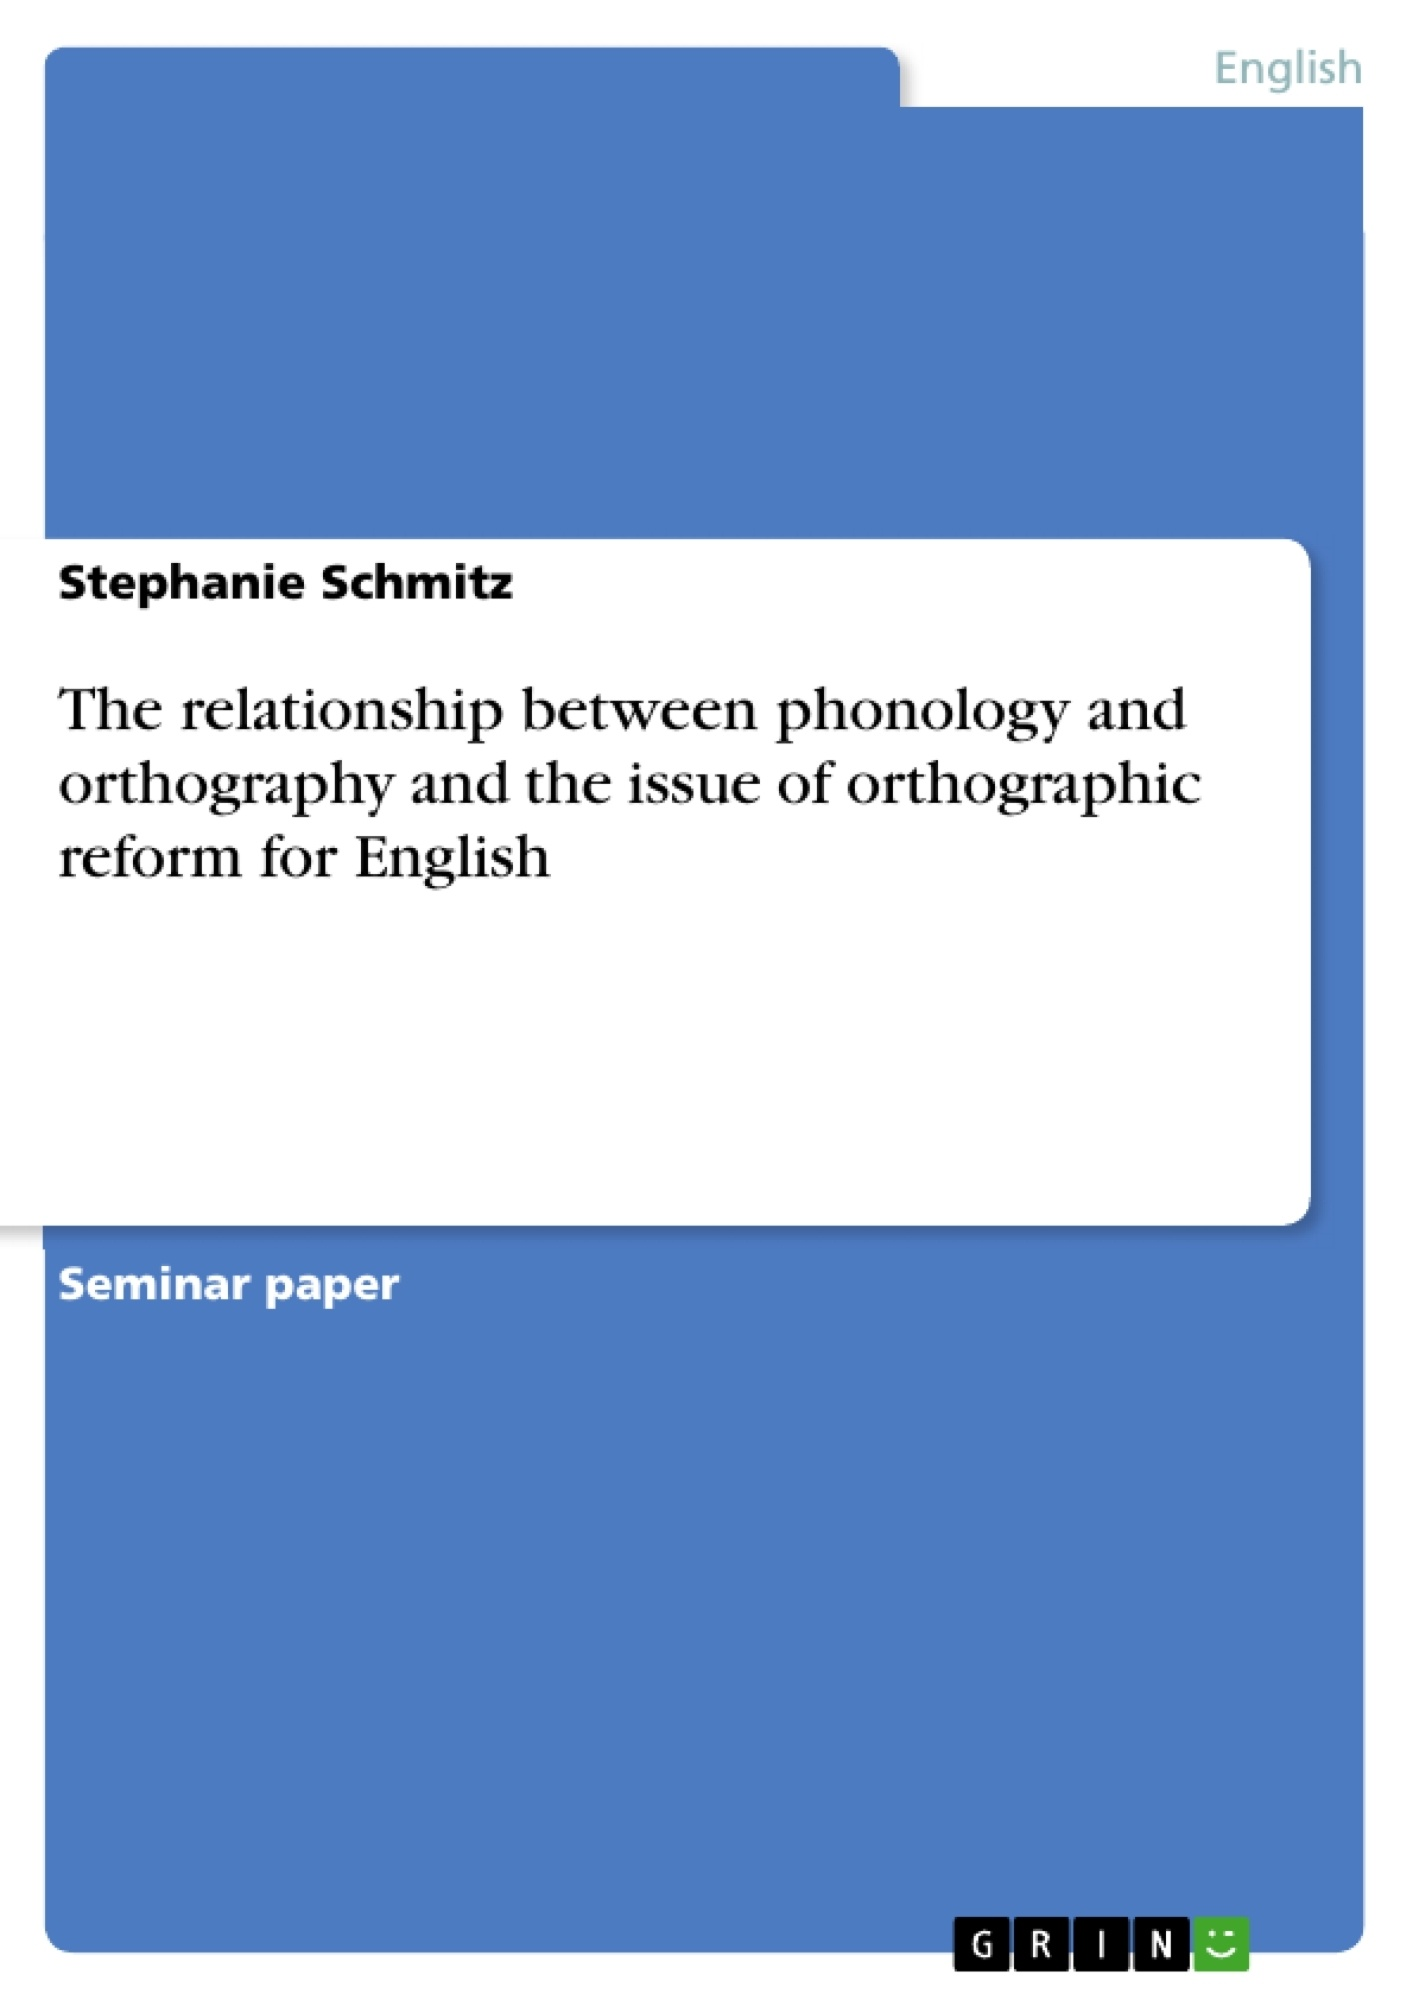 Title: The relationship between phonology and orthography and the issue of orthographic reform for English